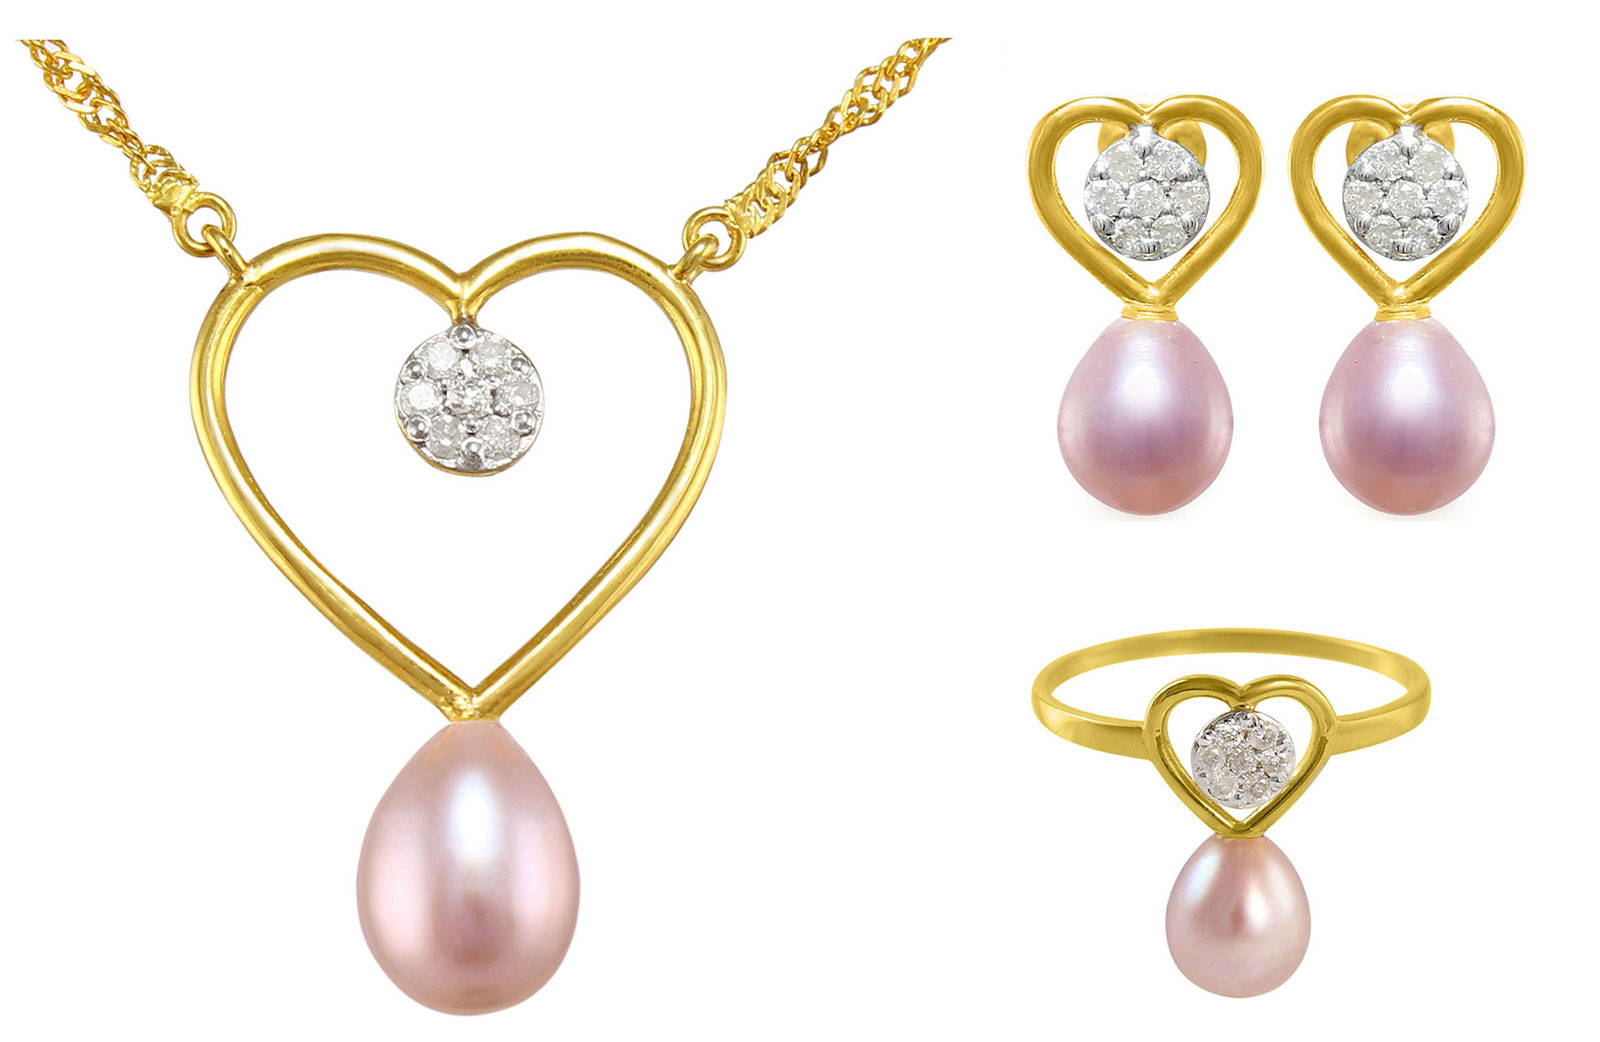 VP Jewels: 18k Solid Gold Diamonds 7mm Purple Pearls Solitaire Heart Earrings, Ring and Necklace Set